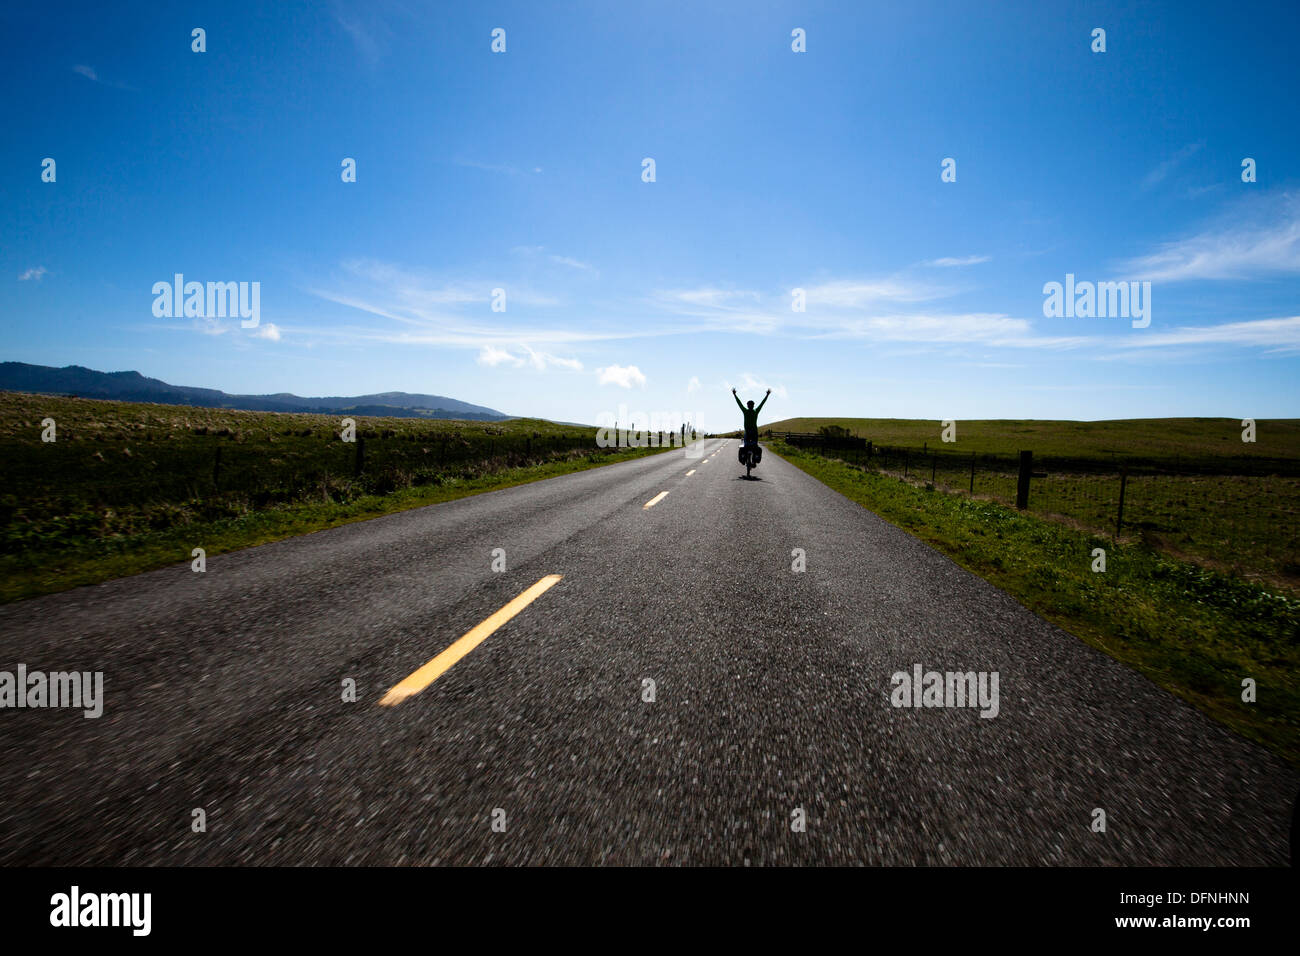 A male cyclist raises his arms above his head after reaching the summit of Mattole Road near Ferndale, California. - Stock Image